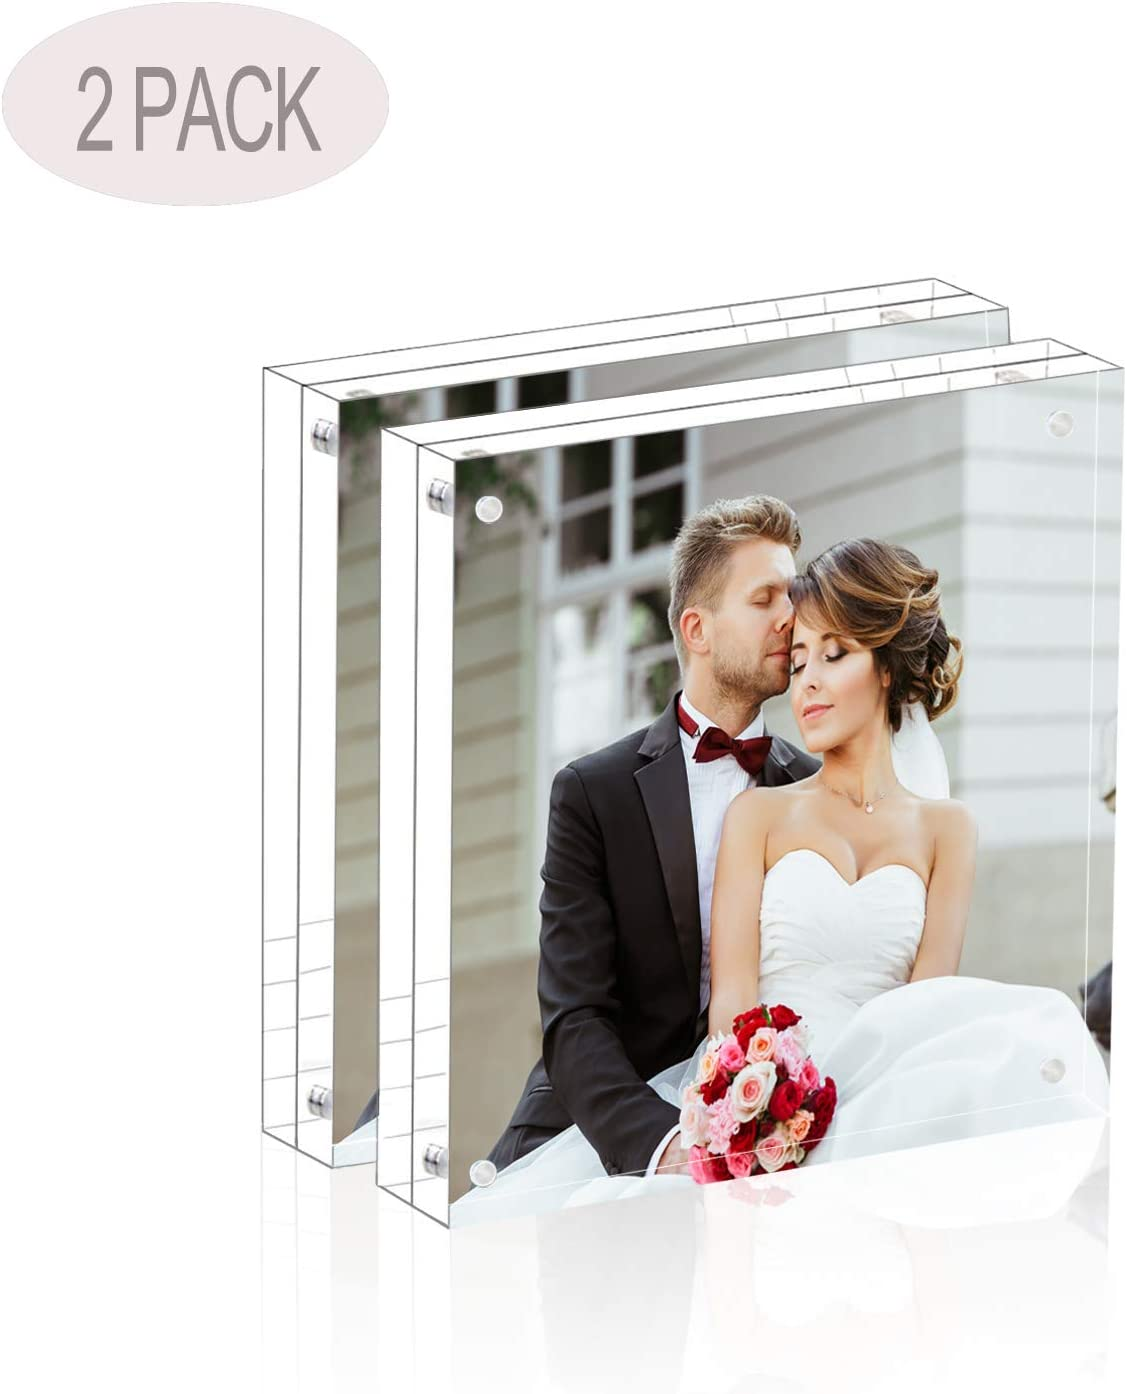 Magicool Premium Acrylic Photo Frame- Magnet Photo Frame -Double Sied Thick Desktop Frames (5x5 2 Pack)